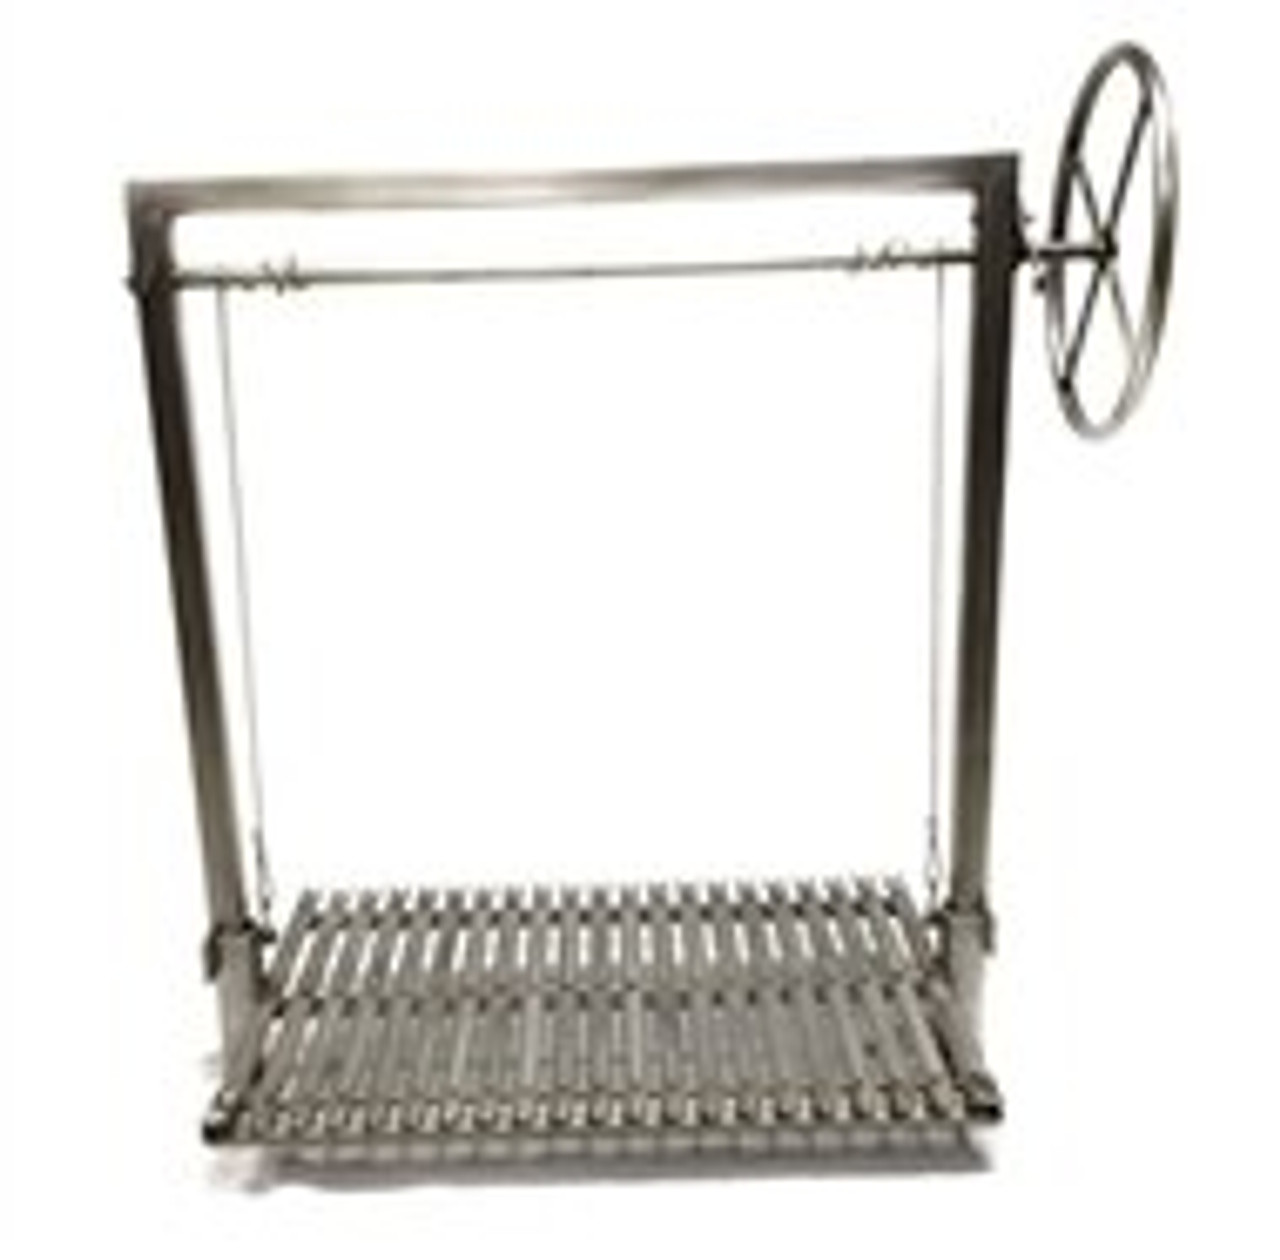 Stainless Steel Argentine Masonry Grill Kits with No Flange and No Brasero